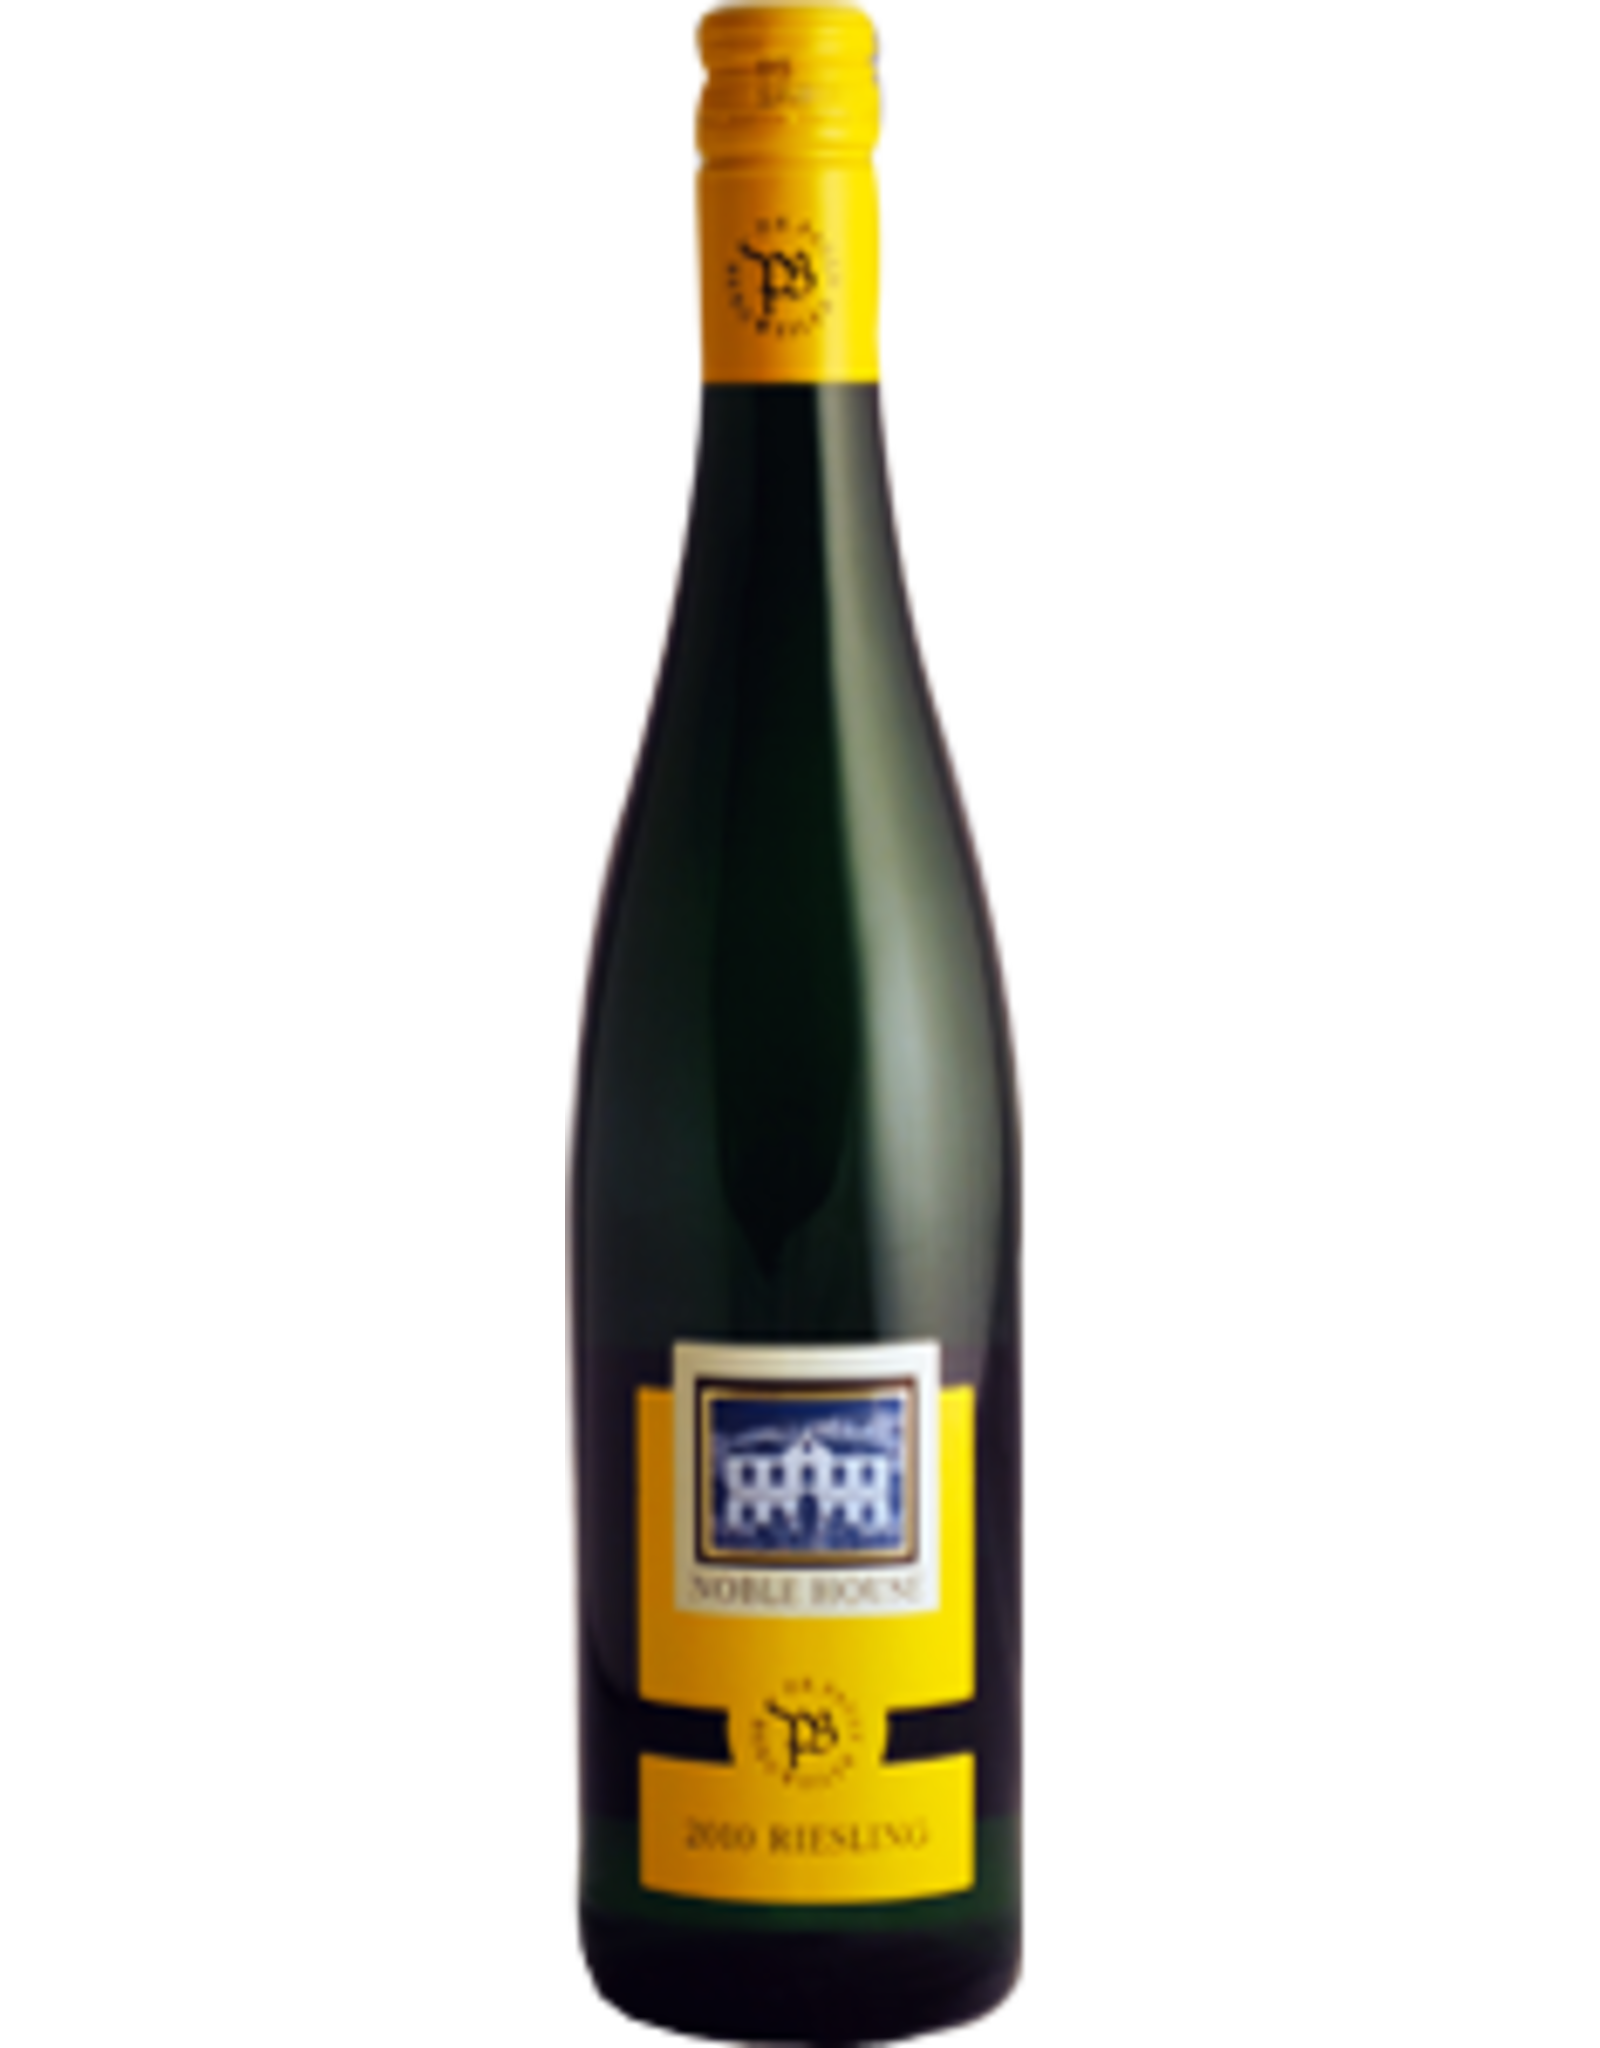 Noble House Dr. Pauly Bergweiler Eiswein Noble House 375ml (2018)